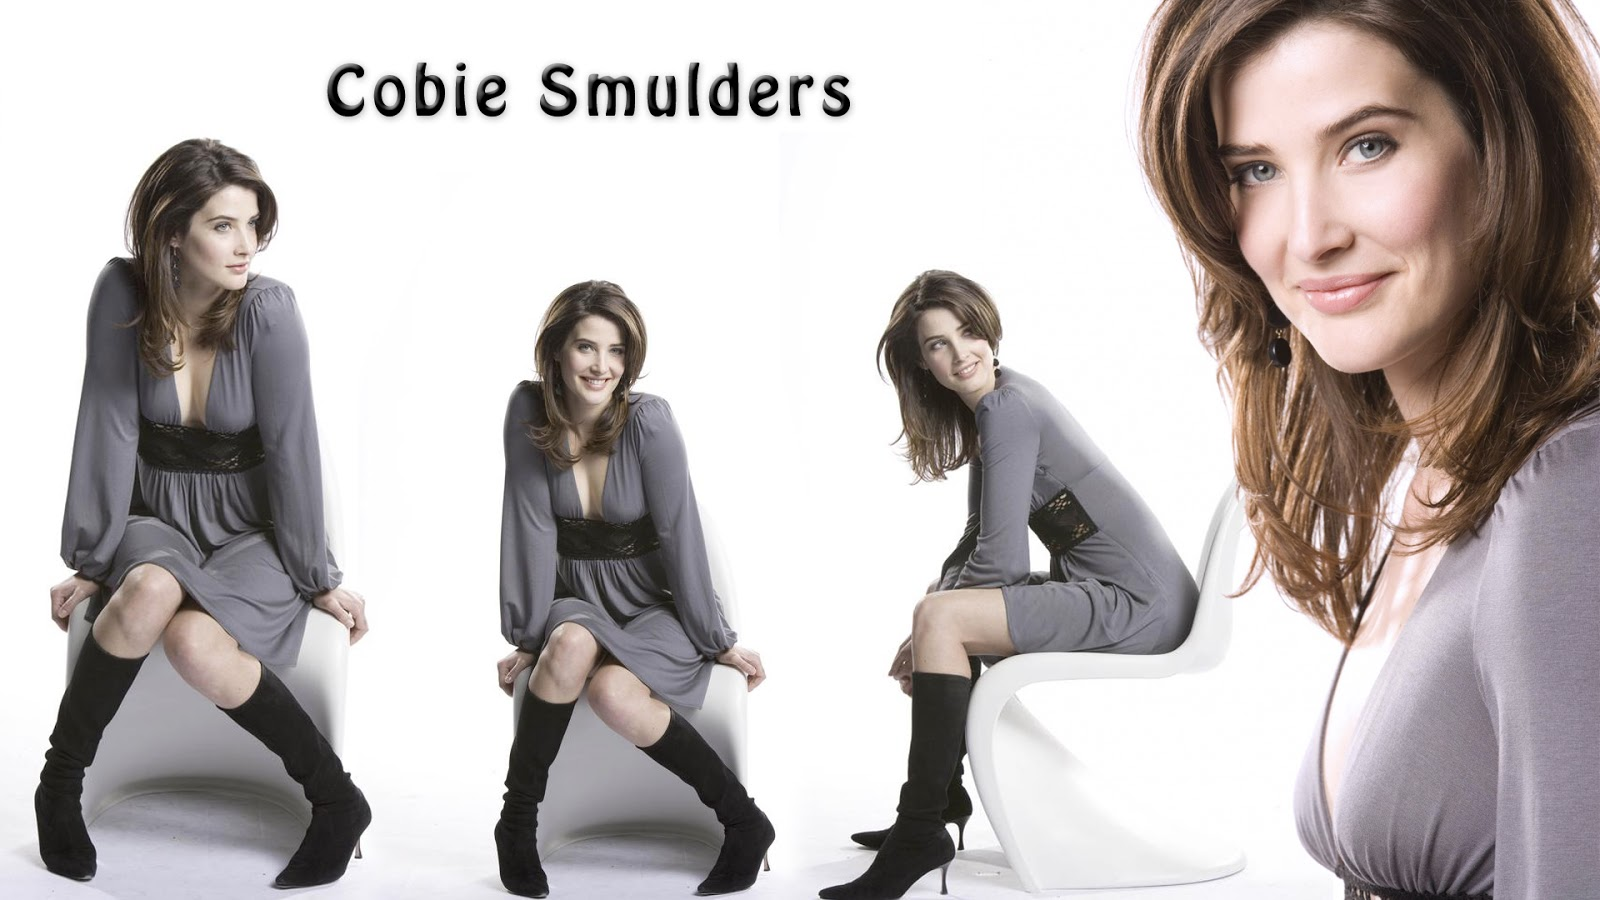 Cobie Smulders hd New Nice Wallpapers 2013 1600x900